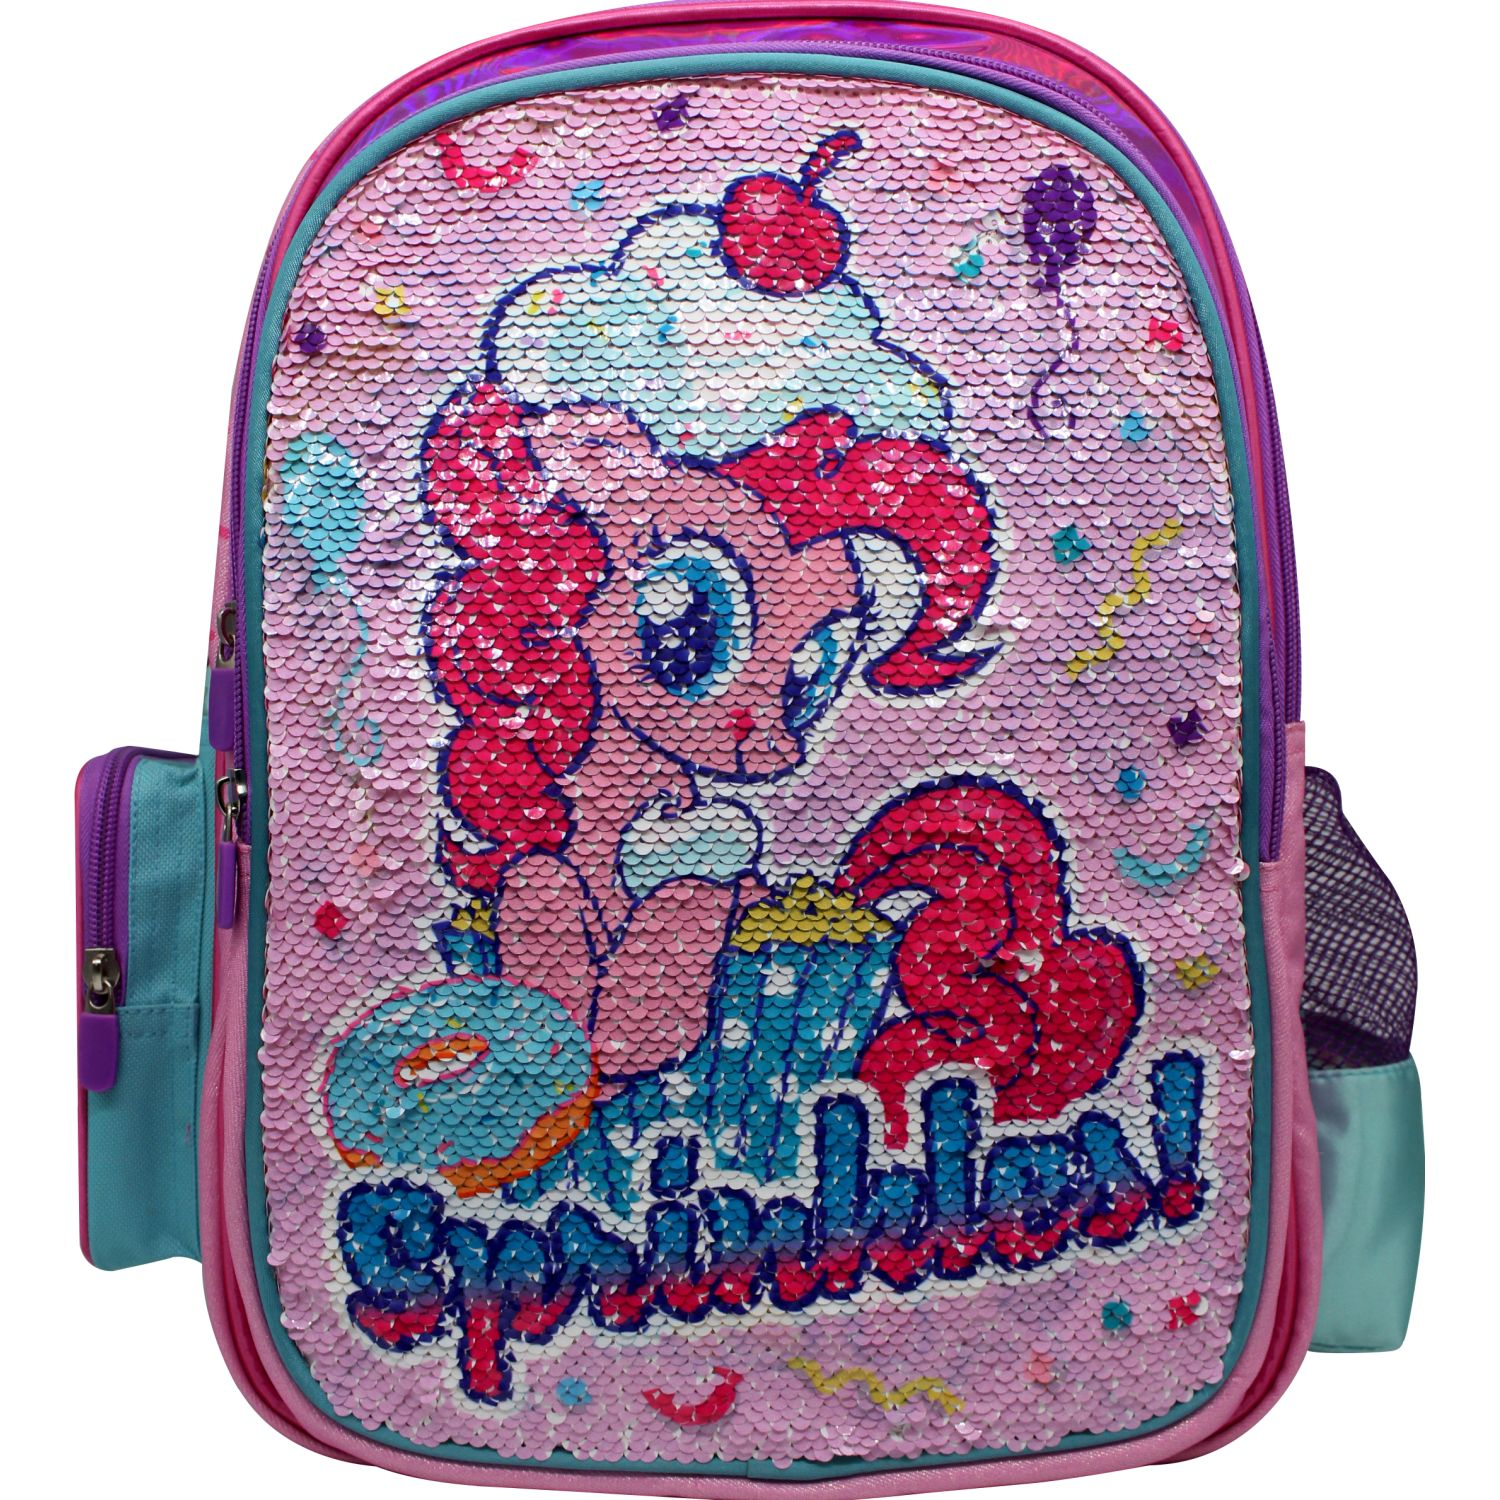 My Little Pony mochila  my little pony Rosado / celeste mochilas